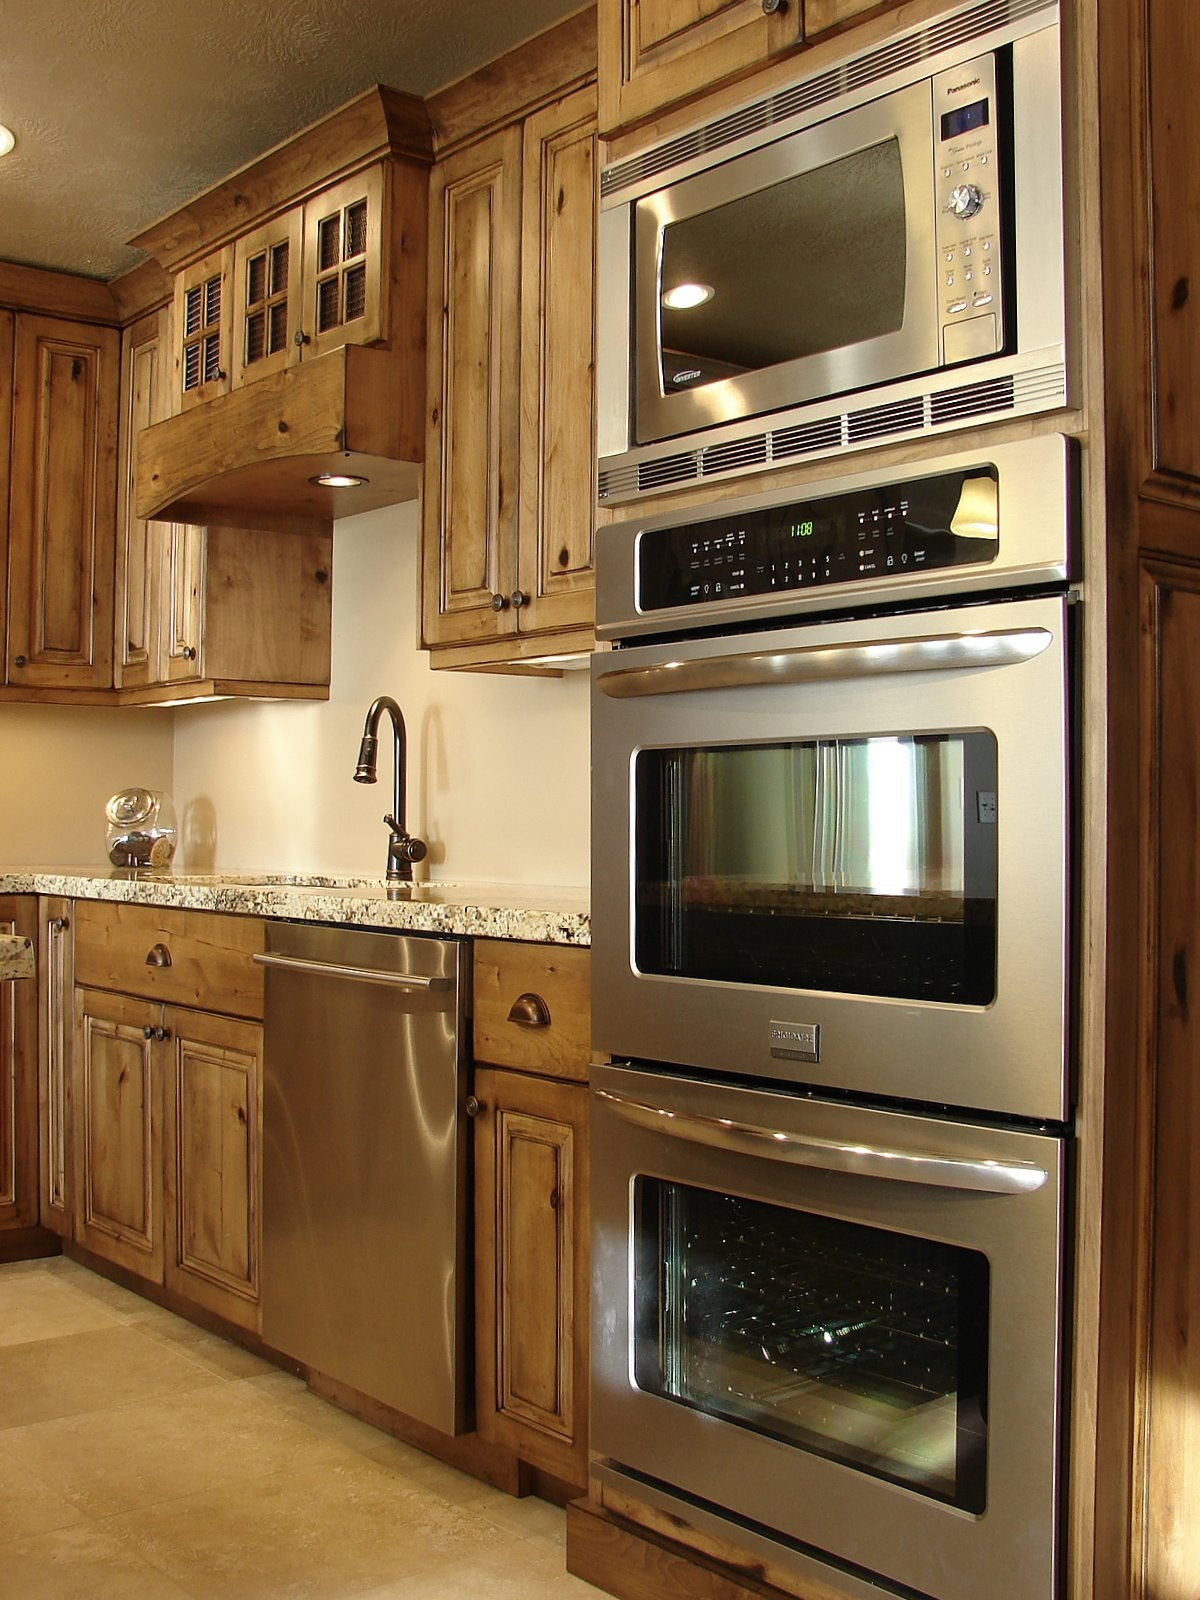 Double Oven Kitchen Cabinets